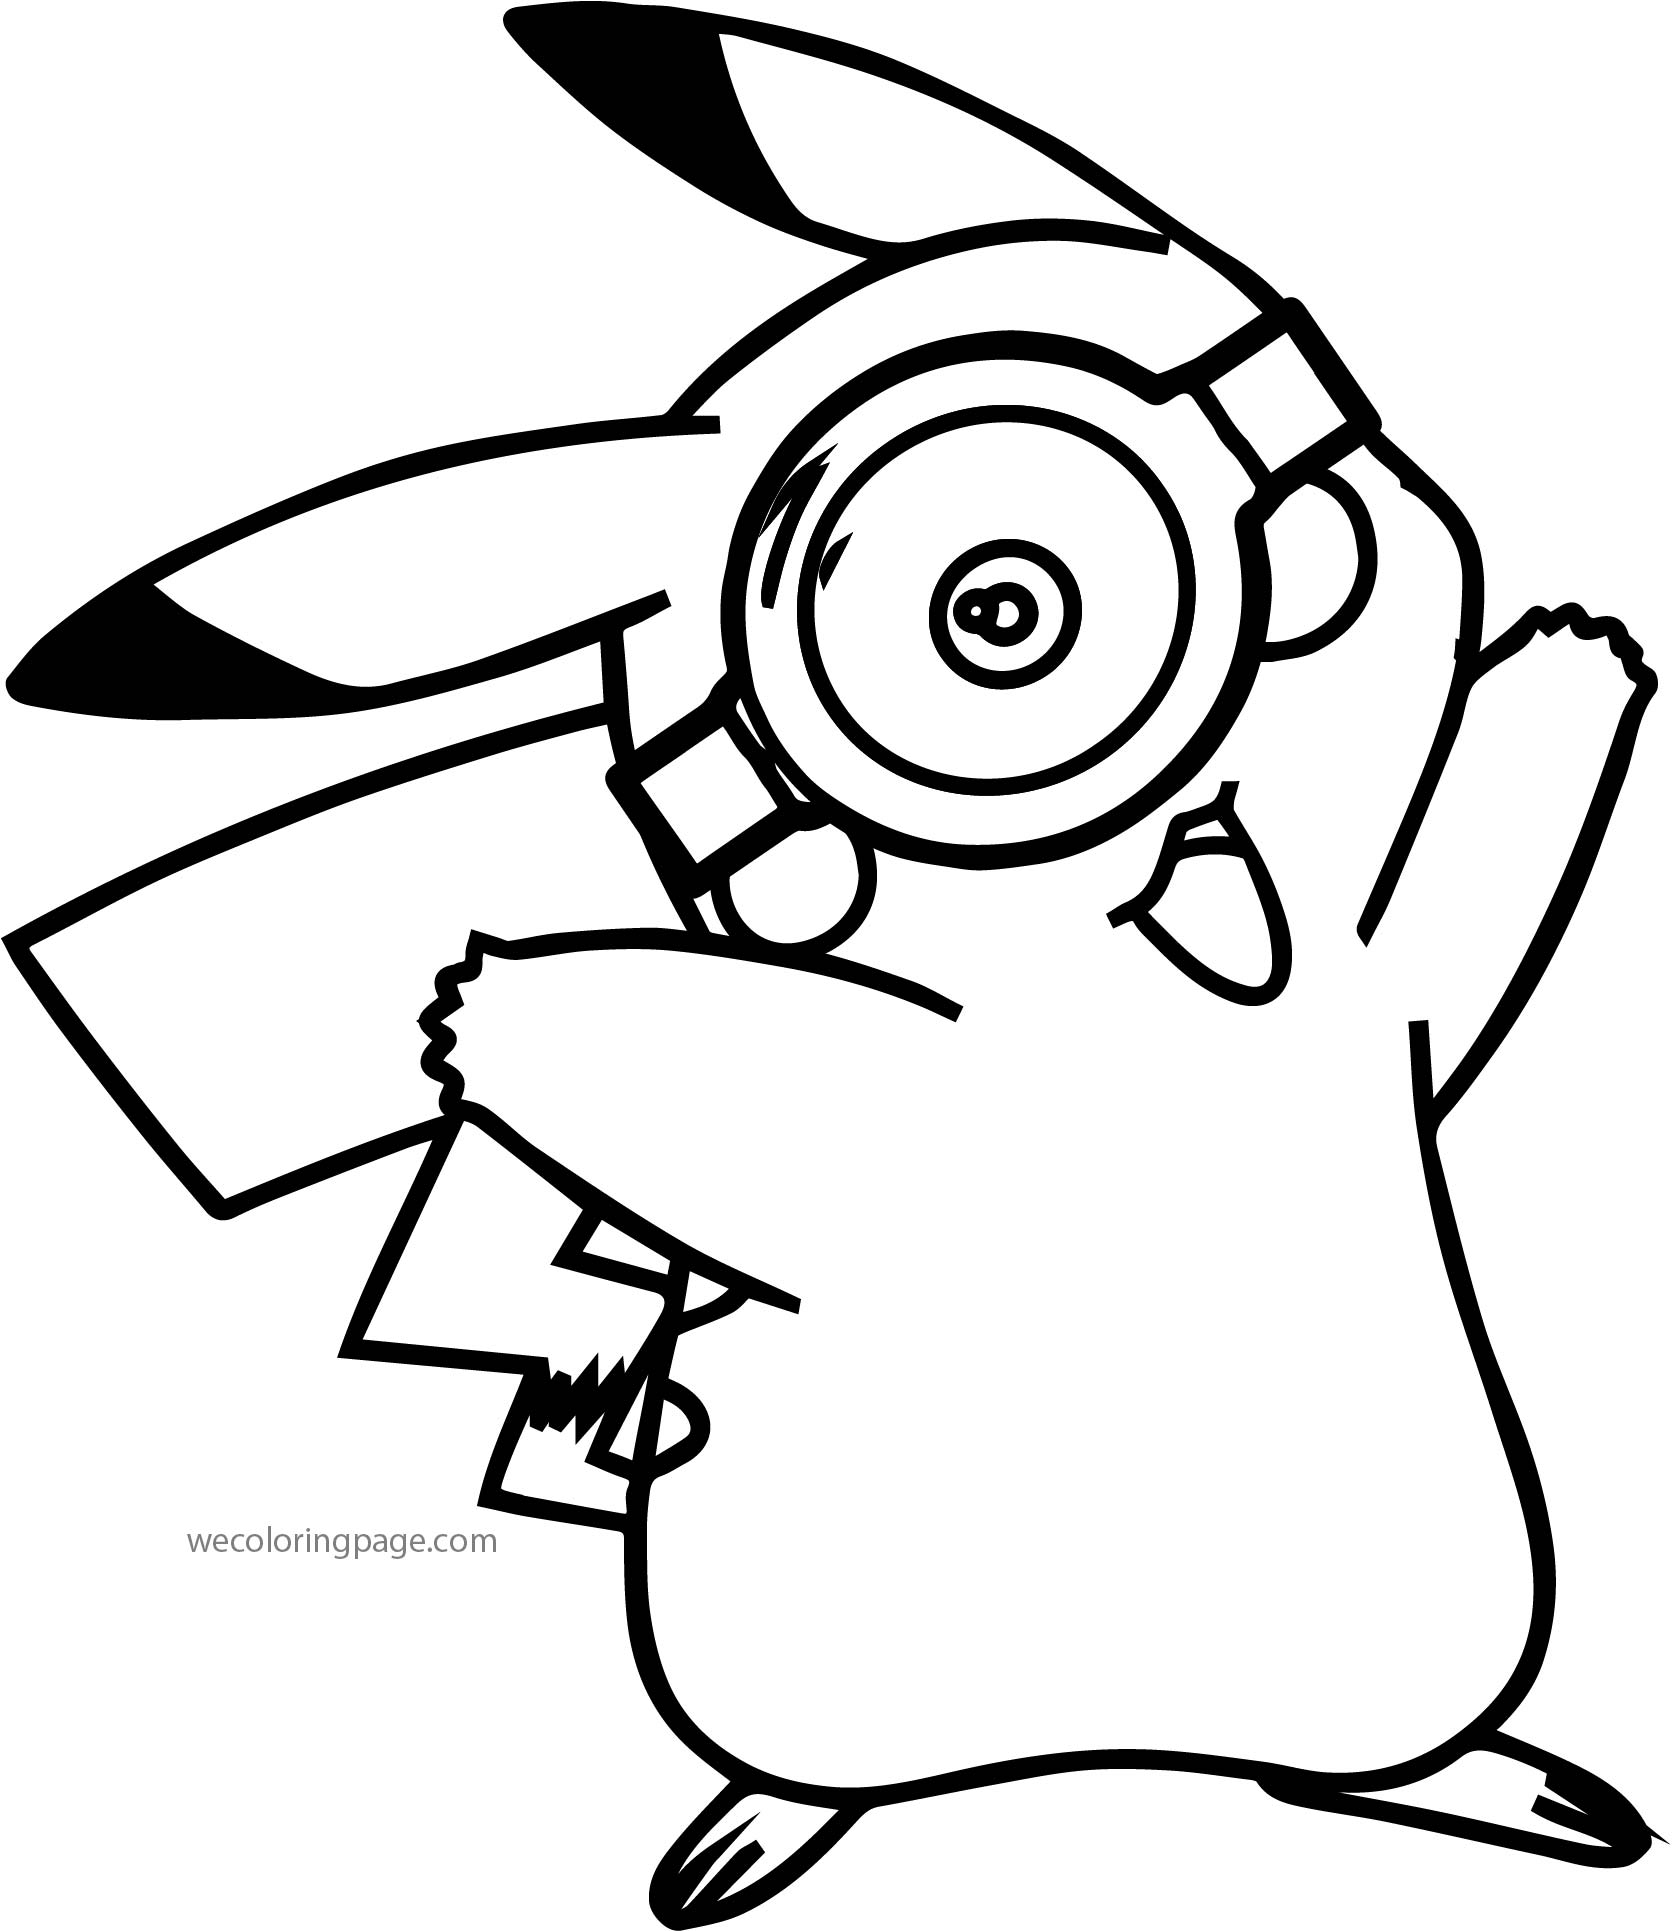 97 Minion Coloring Pages Soccer Player Wecoloringpage